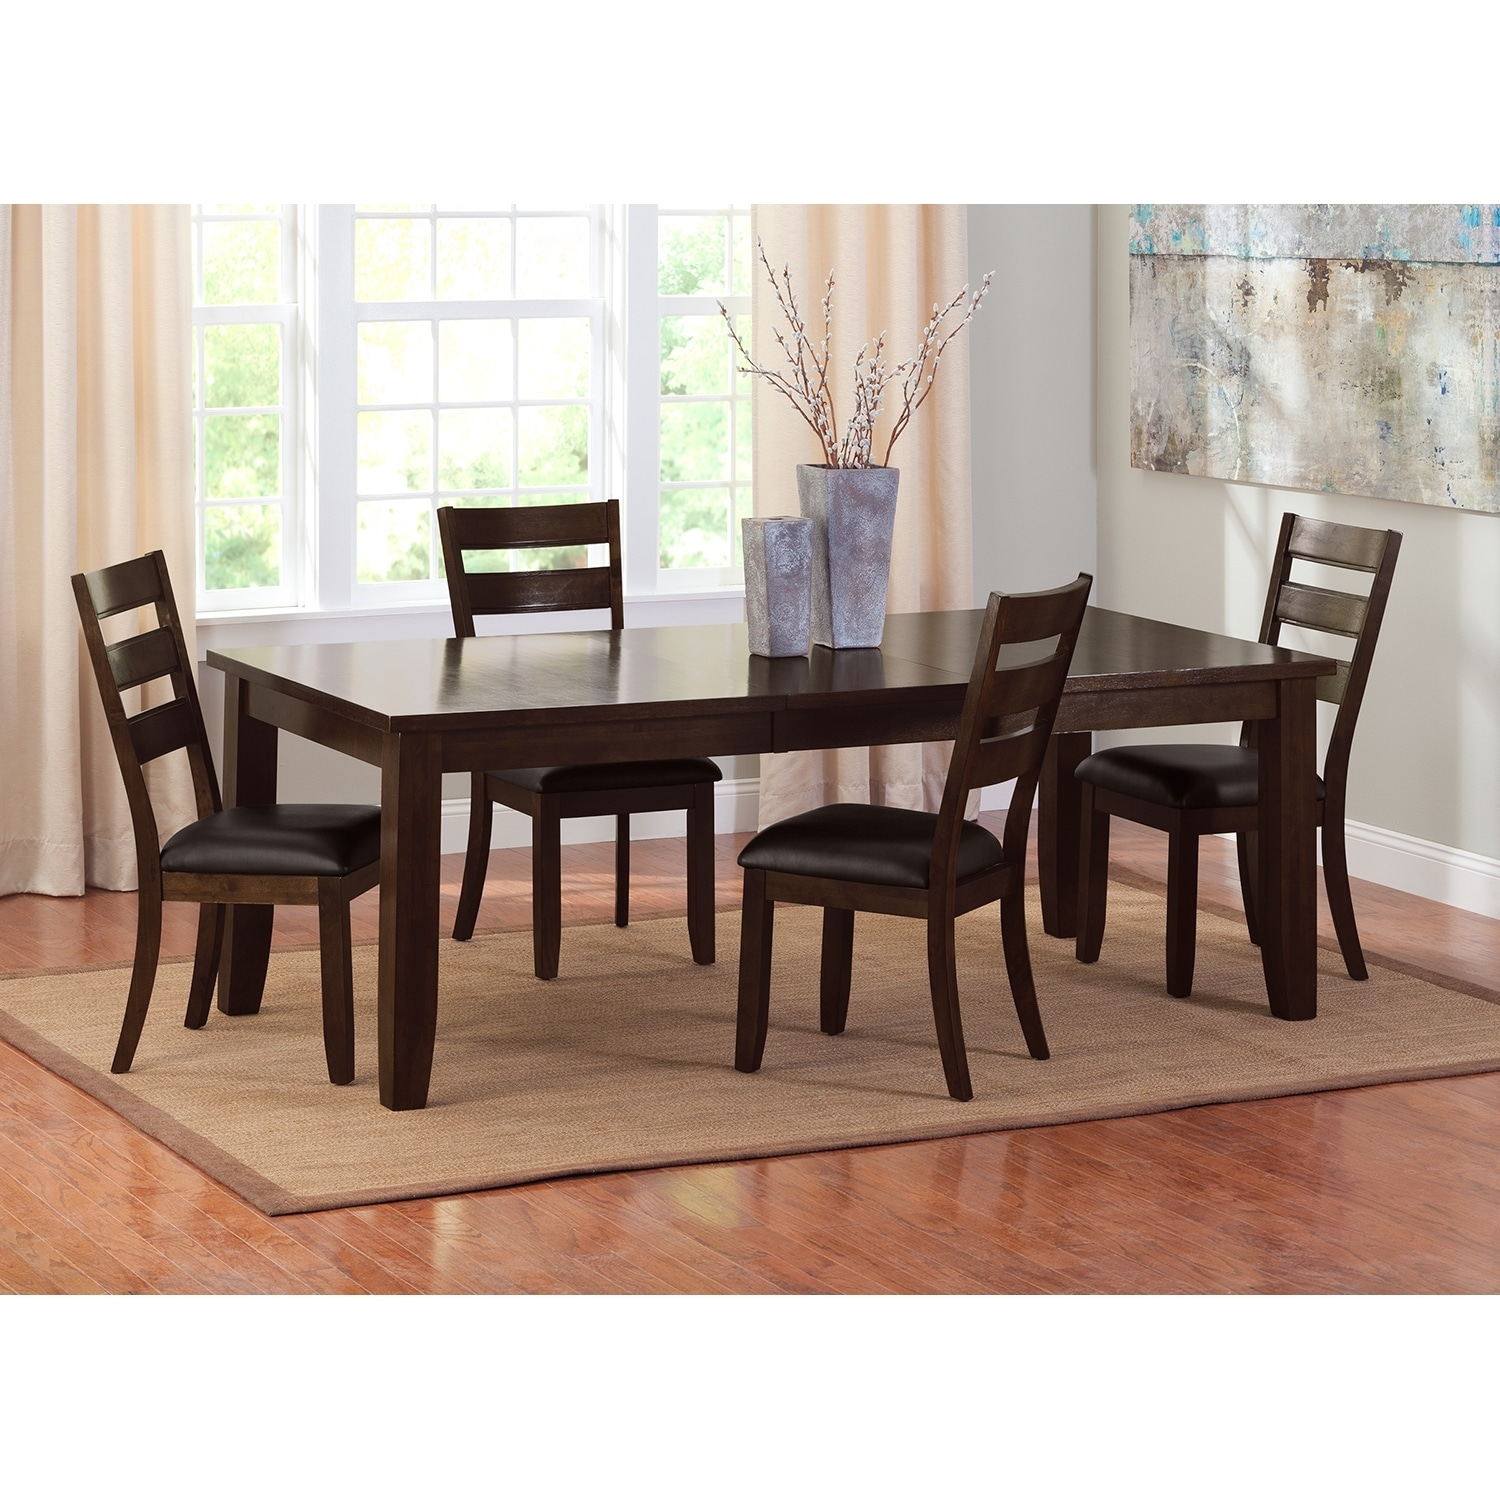 Abaco Dining Room Table Value City Furniture Leather Dining Chairs Layjao